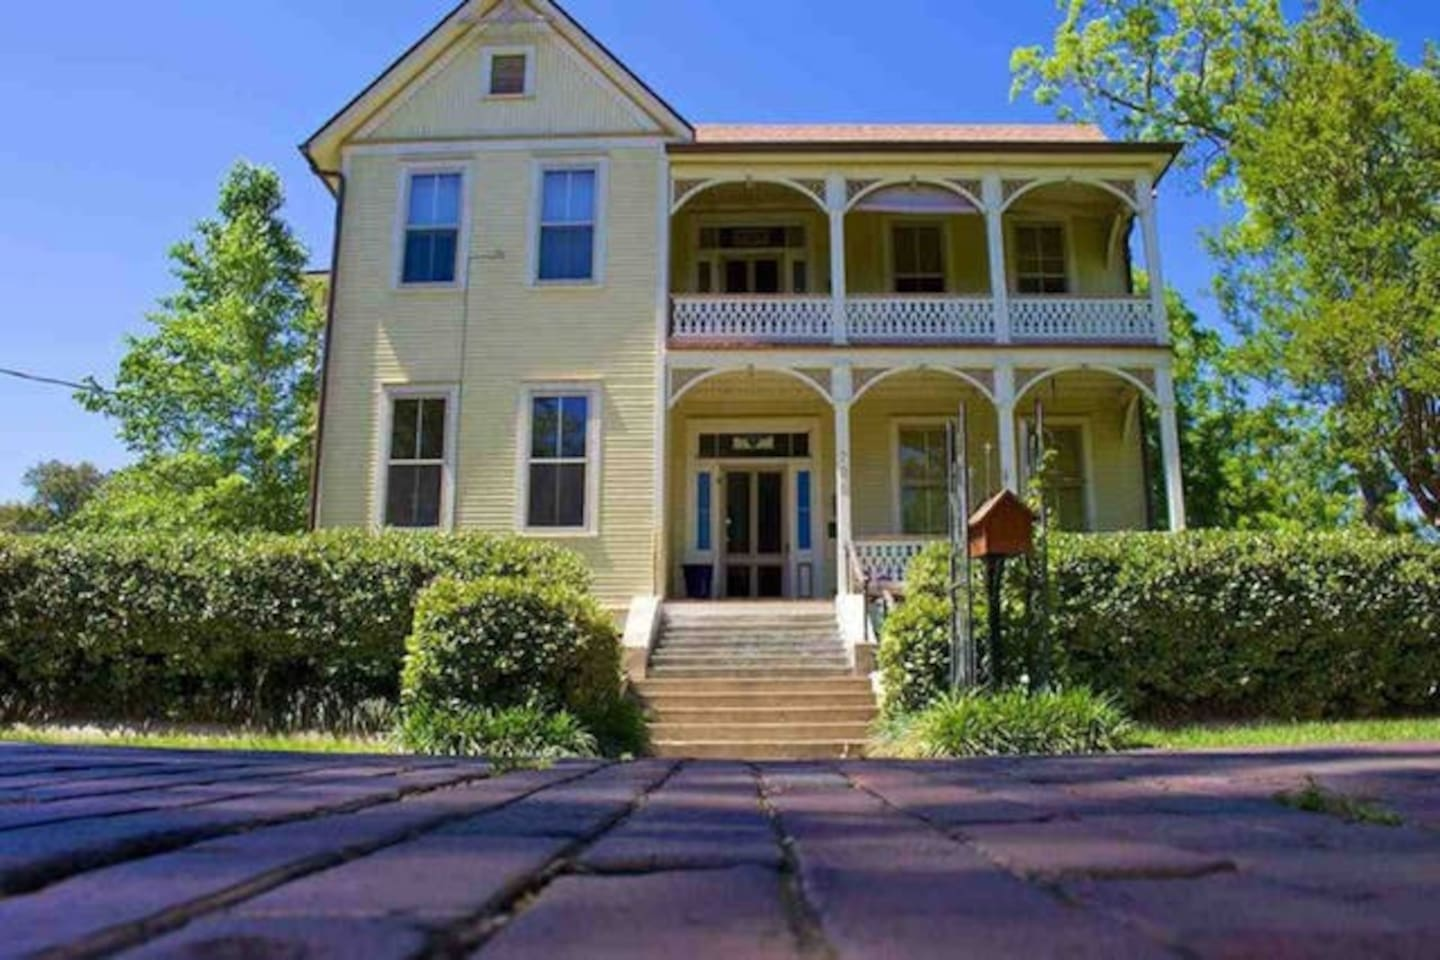 Welcome to the historic Artist House on LaRua!